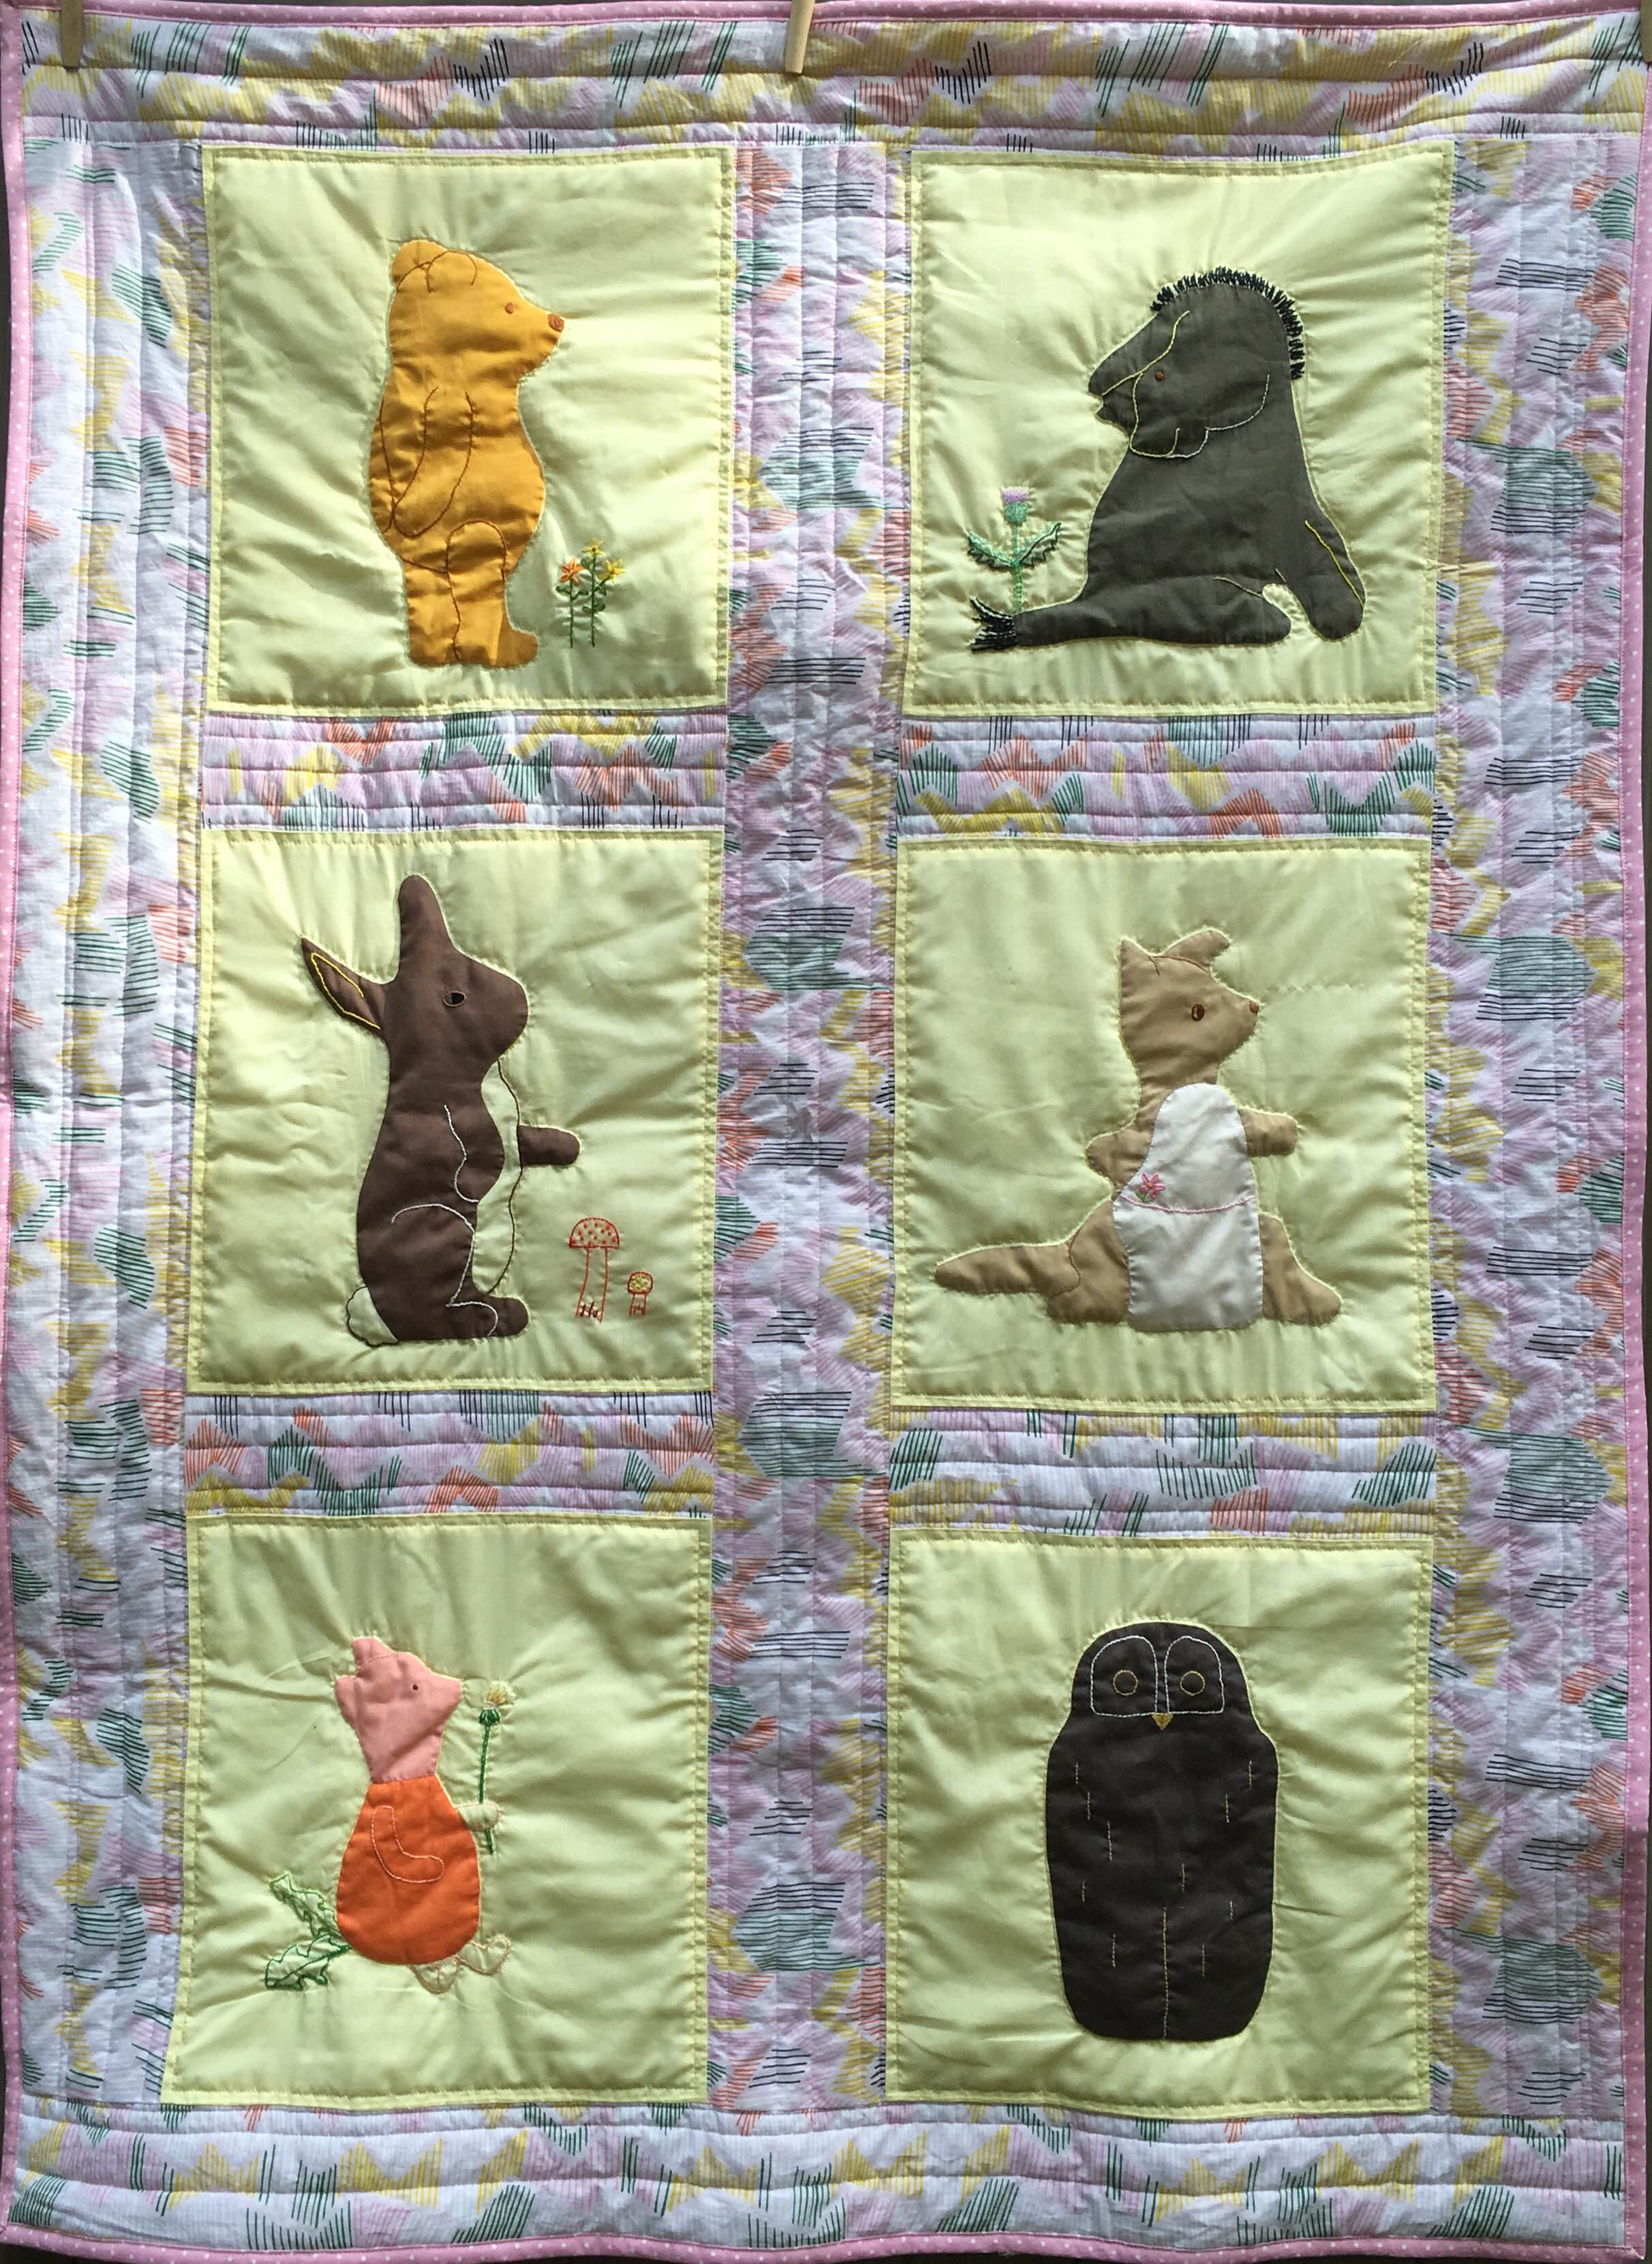 Renovated 1970s Pooh Baby Quilt